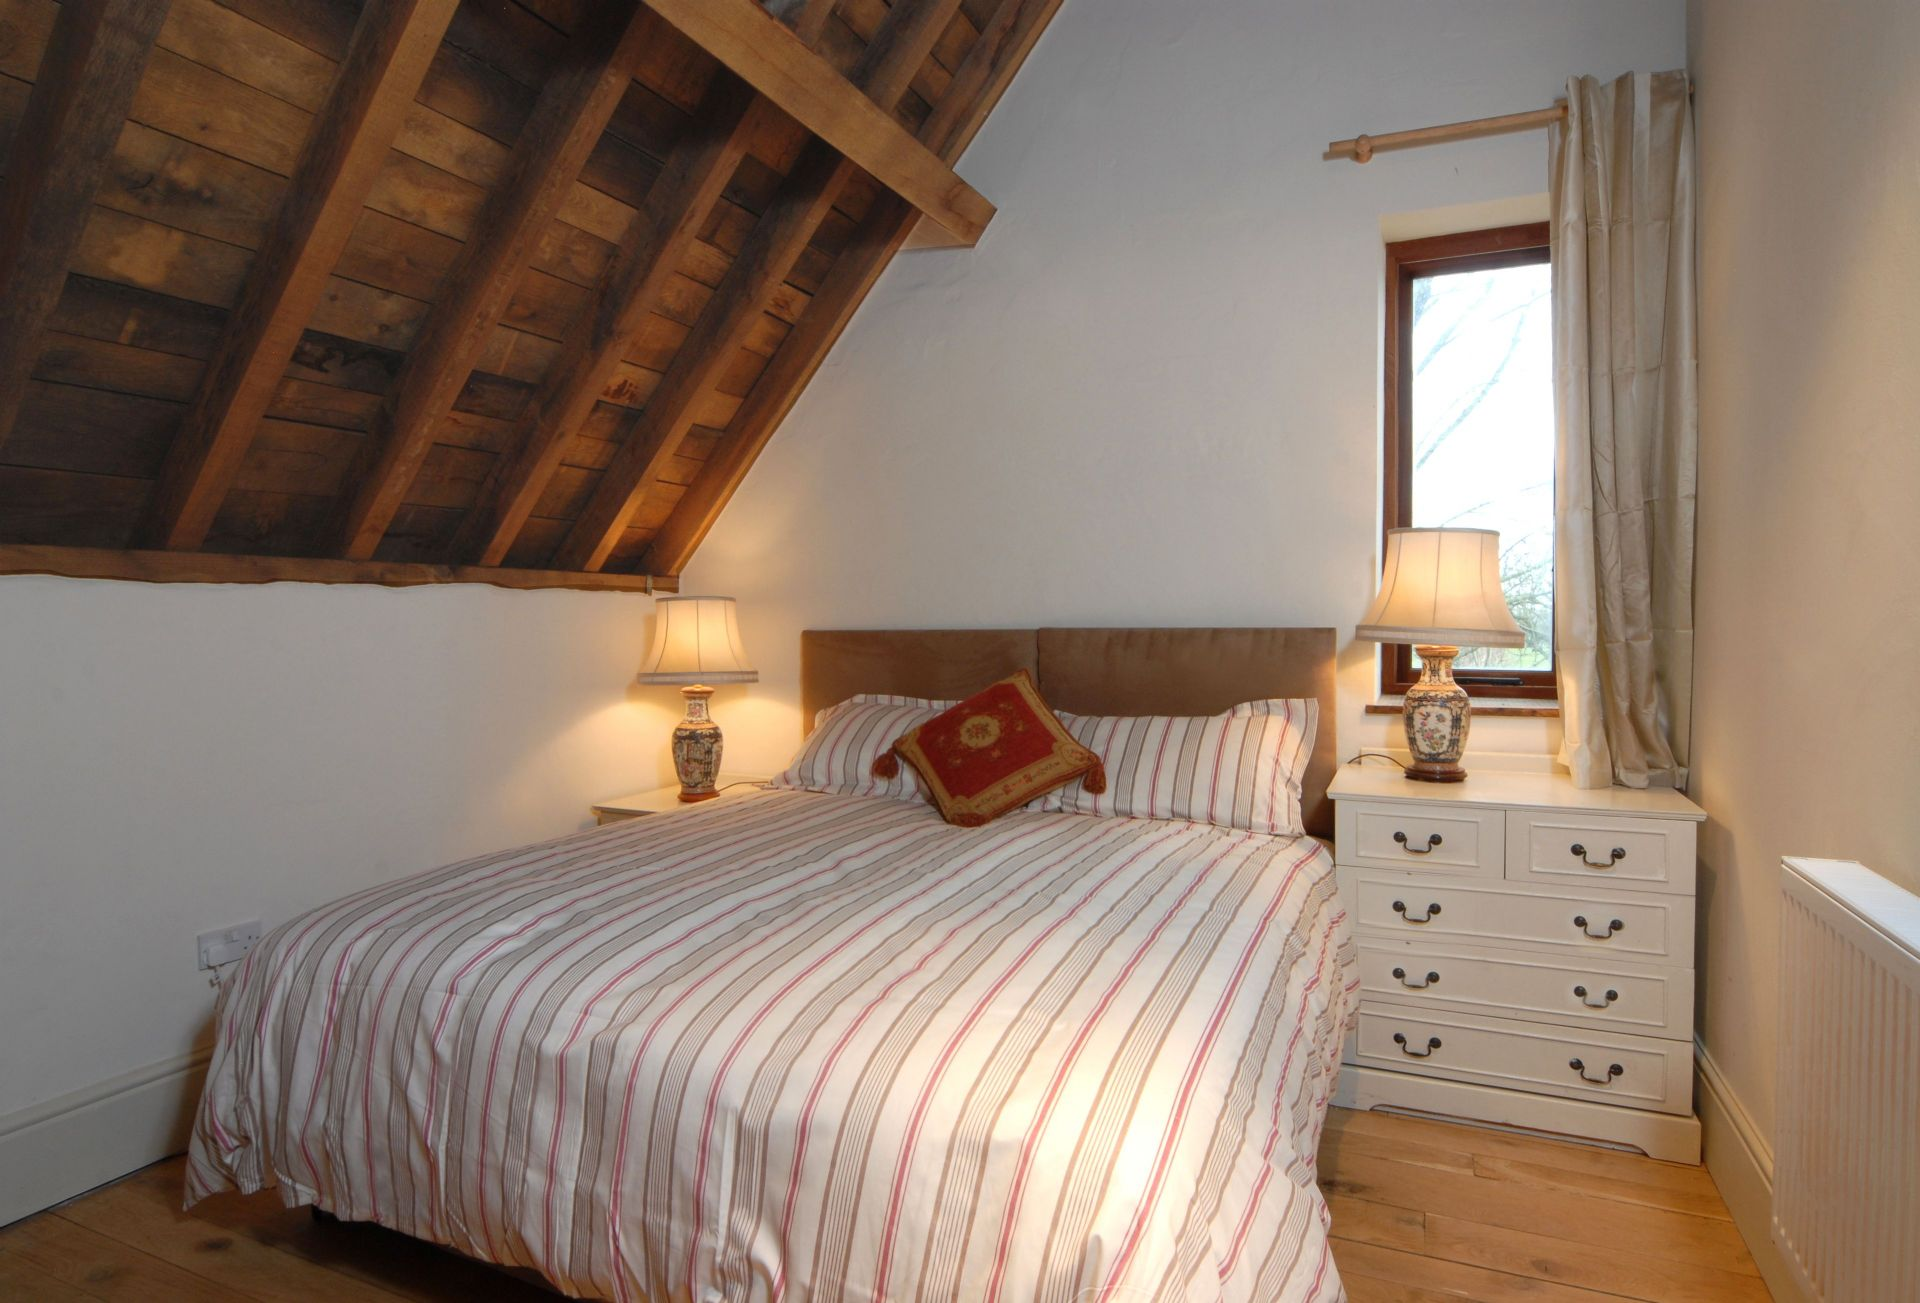 Watery Park Barn First floor:  Bedroom with king-size bed which can be made into two single beds